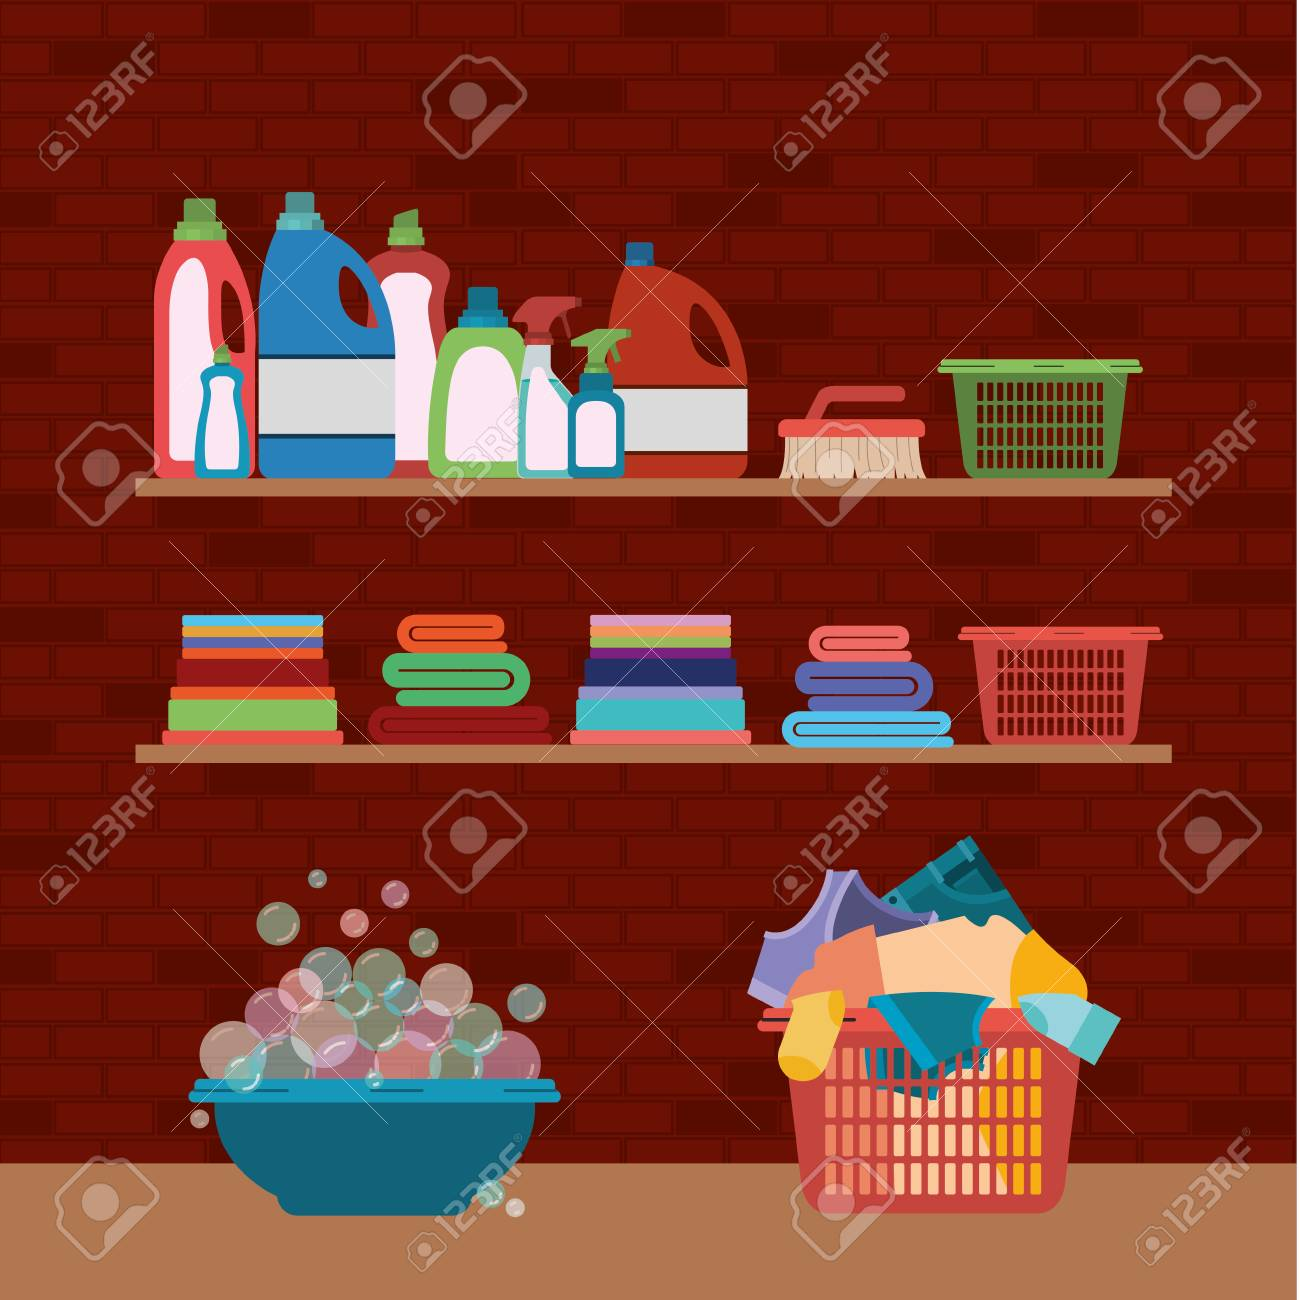 Brick Wall Background Of Wooden Shelves And Elements Of Cleaning